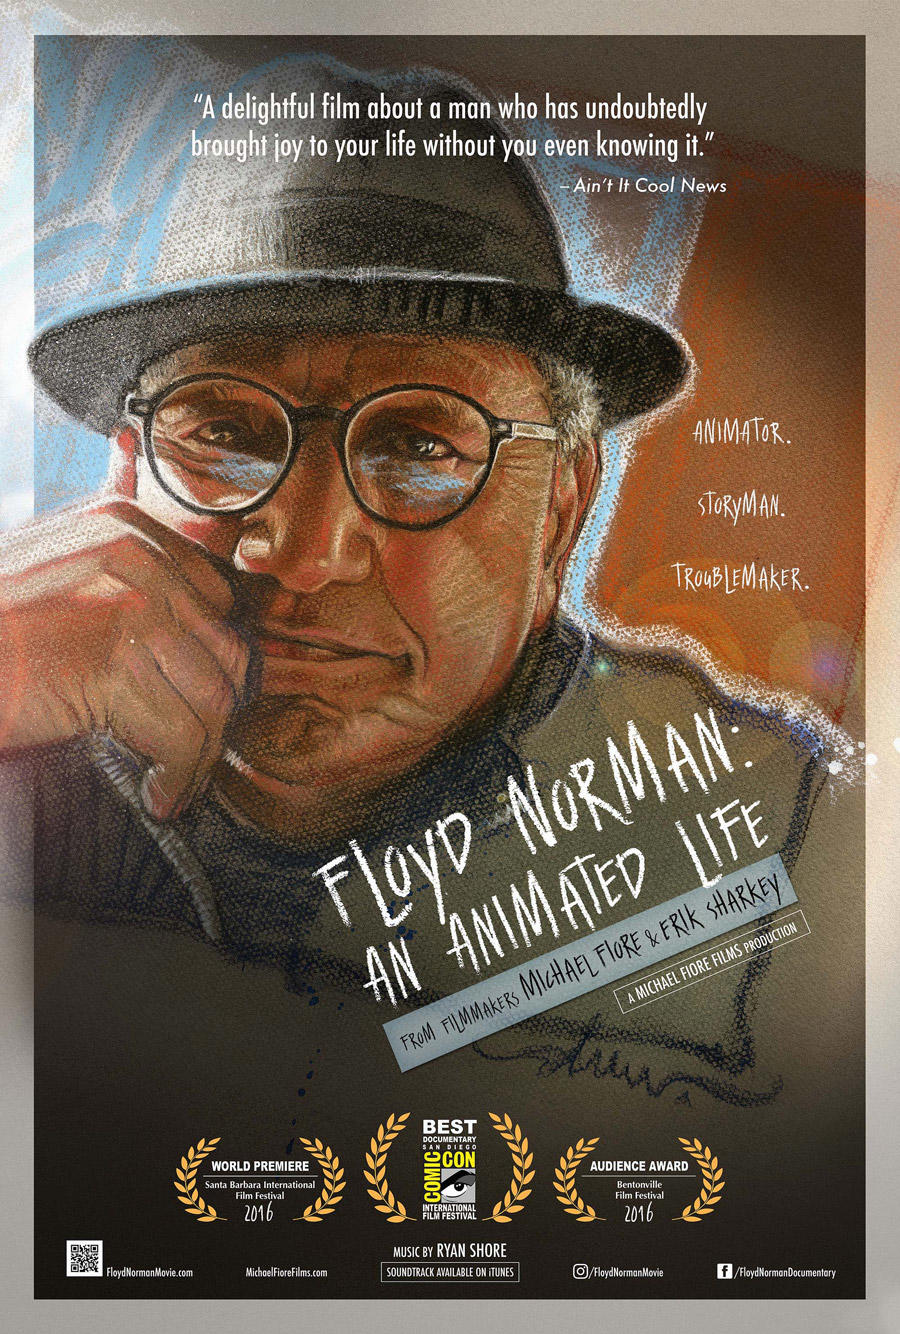 Floyd Norman: An Animated Life poster art